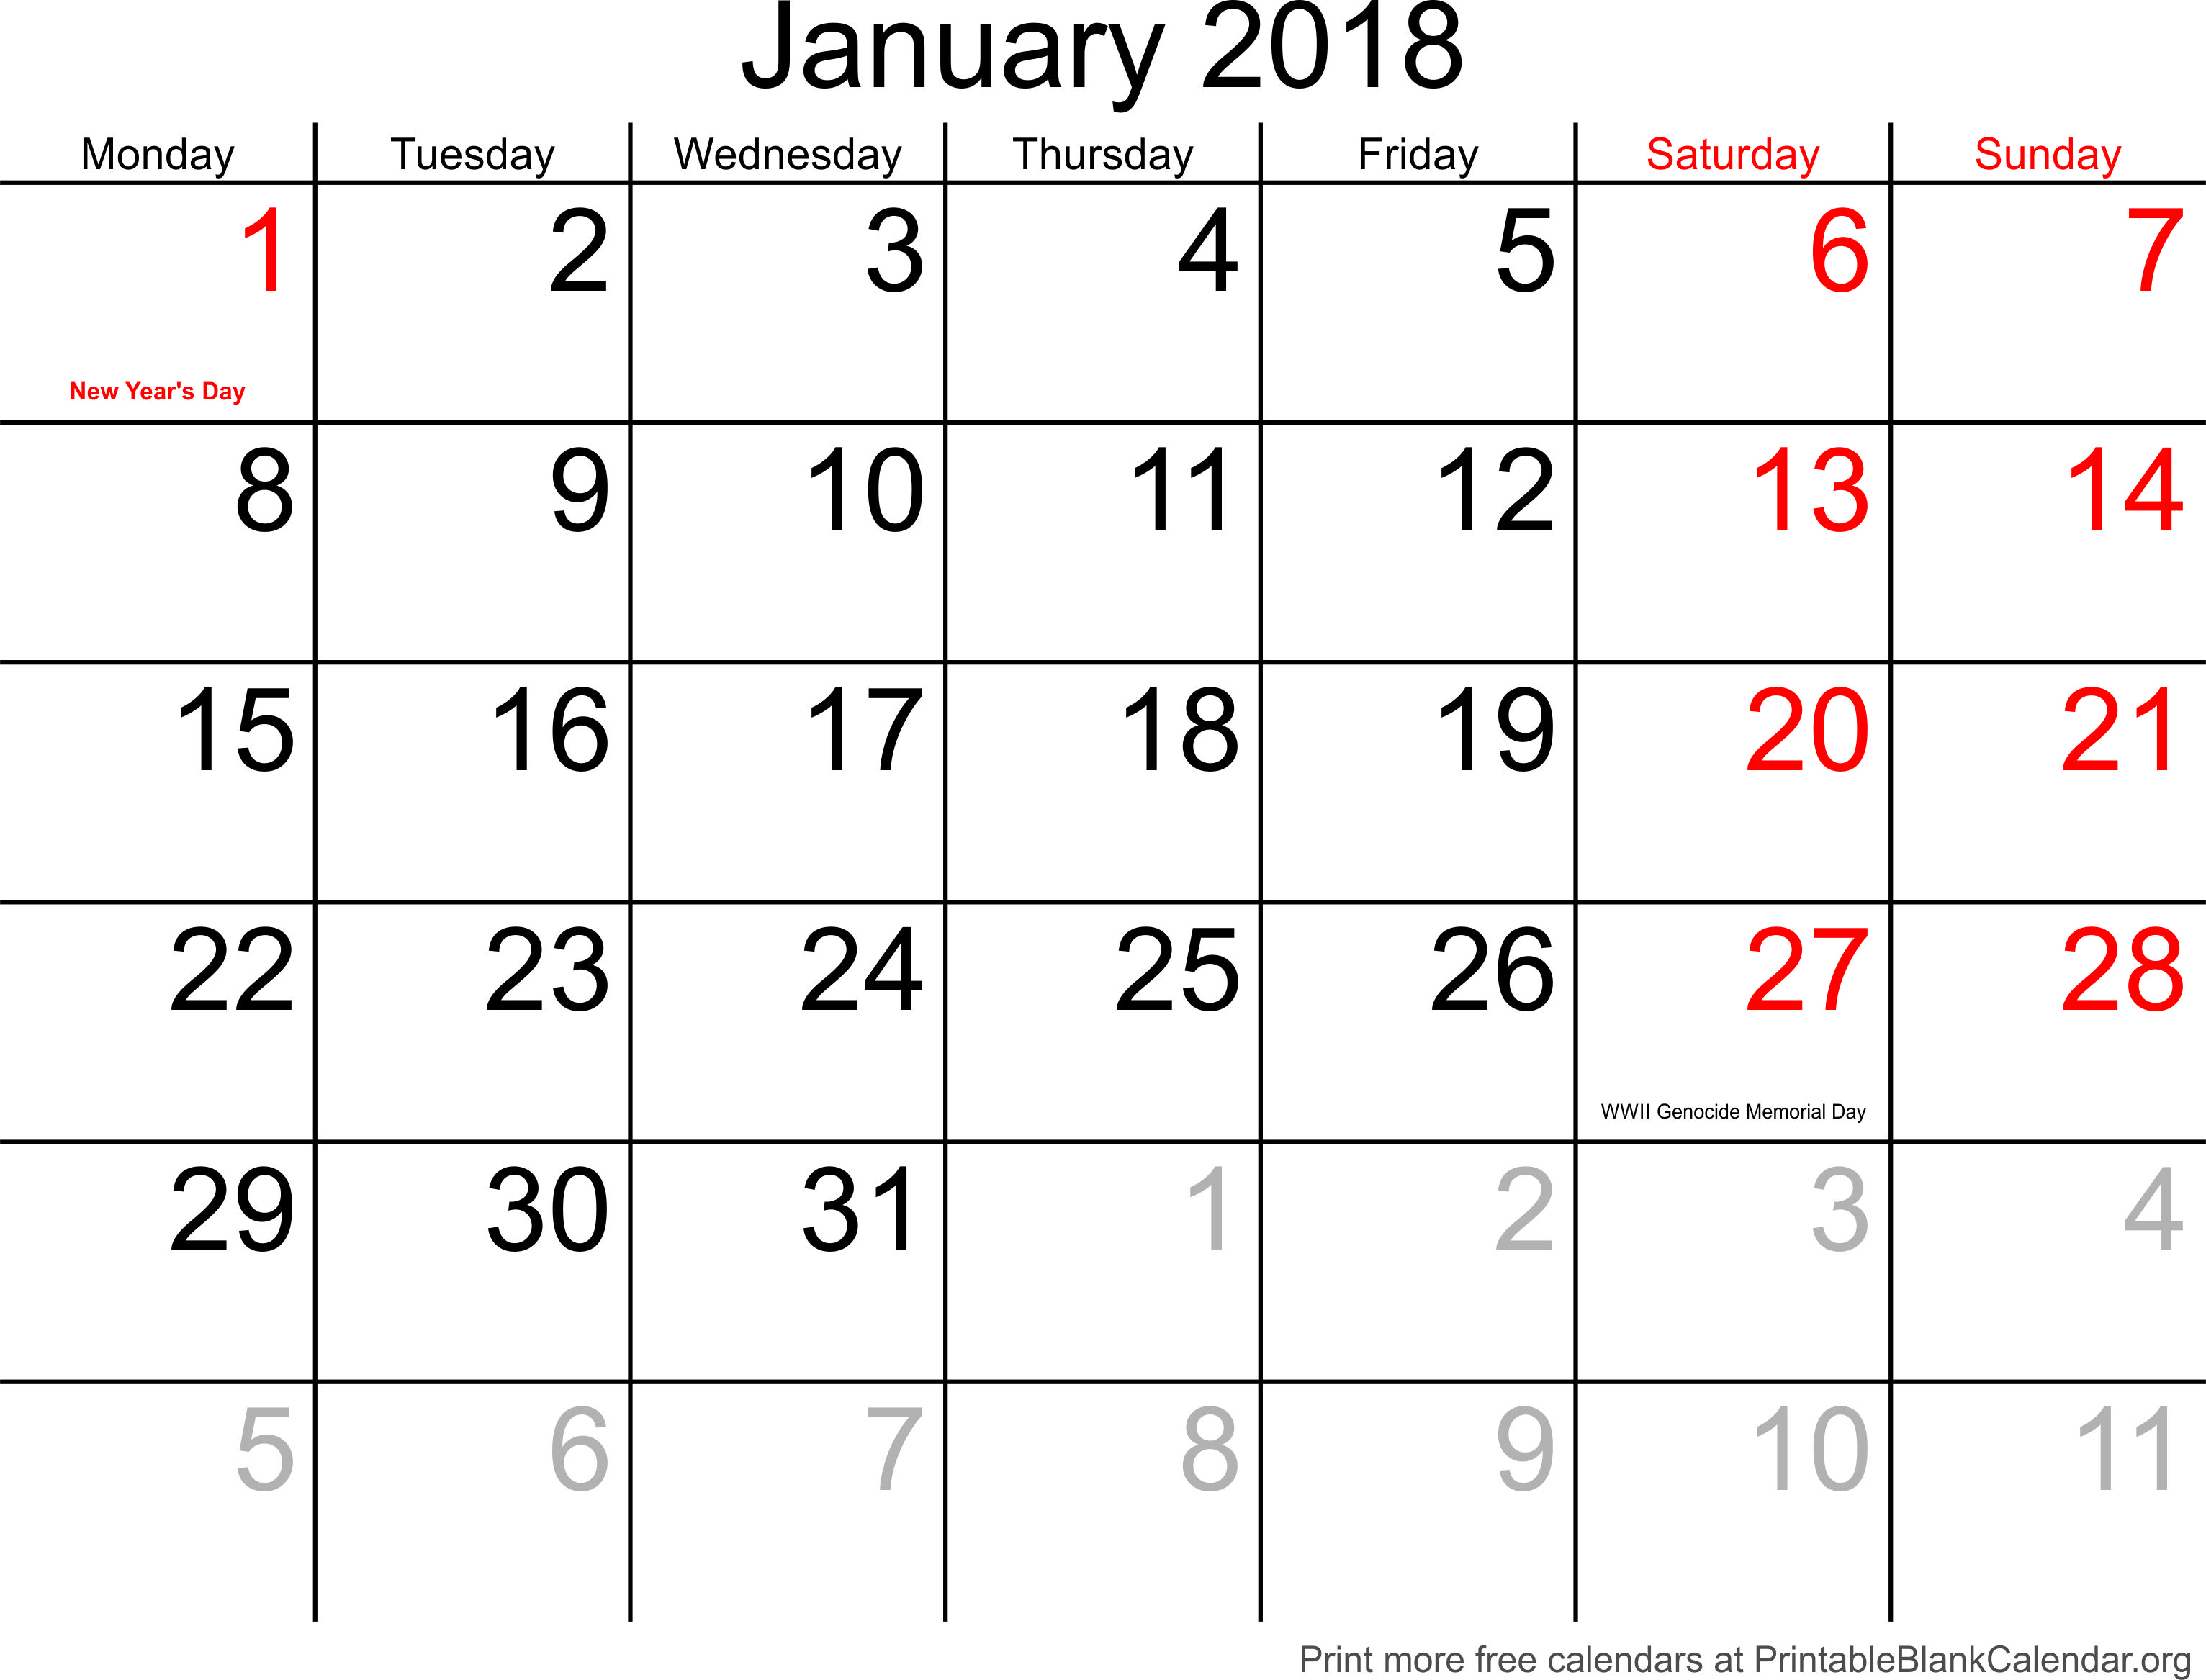 picture regarding January Printable Calender named printable calendar January 2018 - Printable Blank